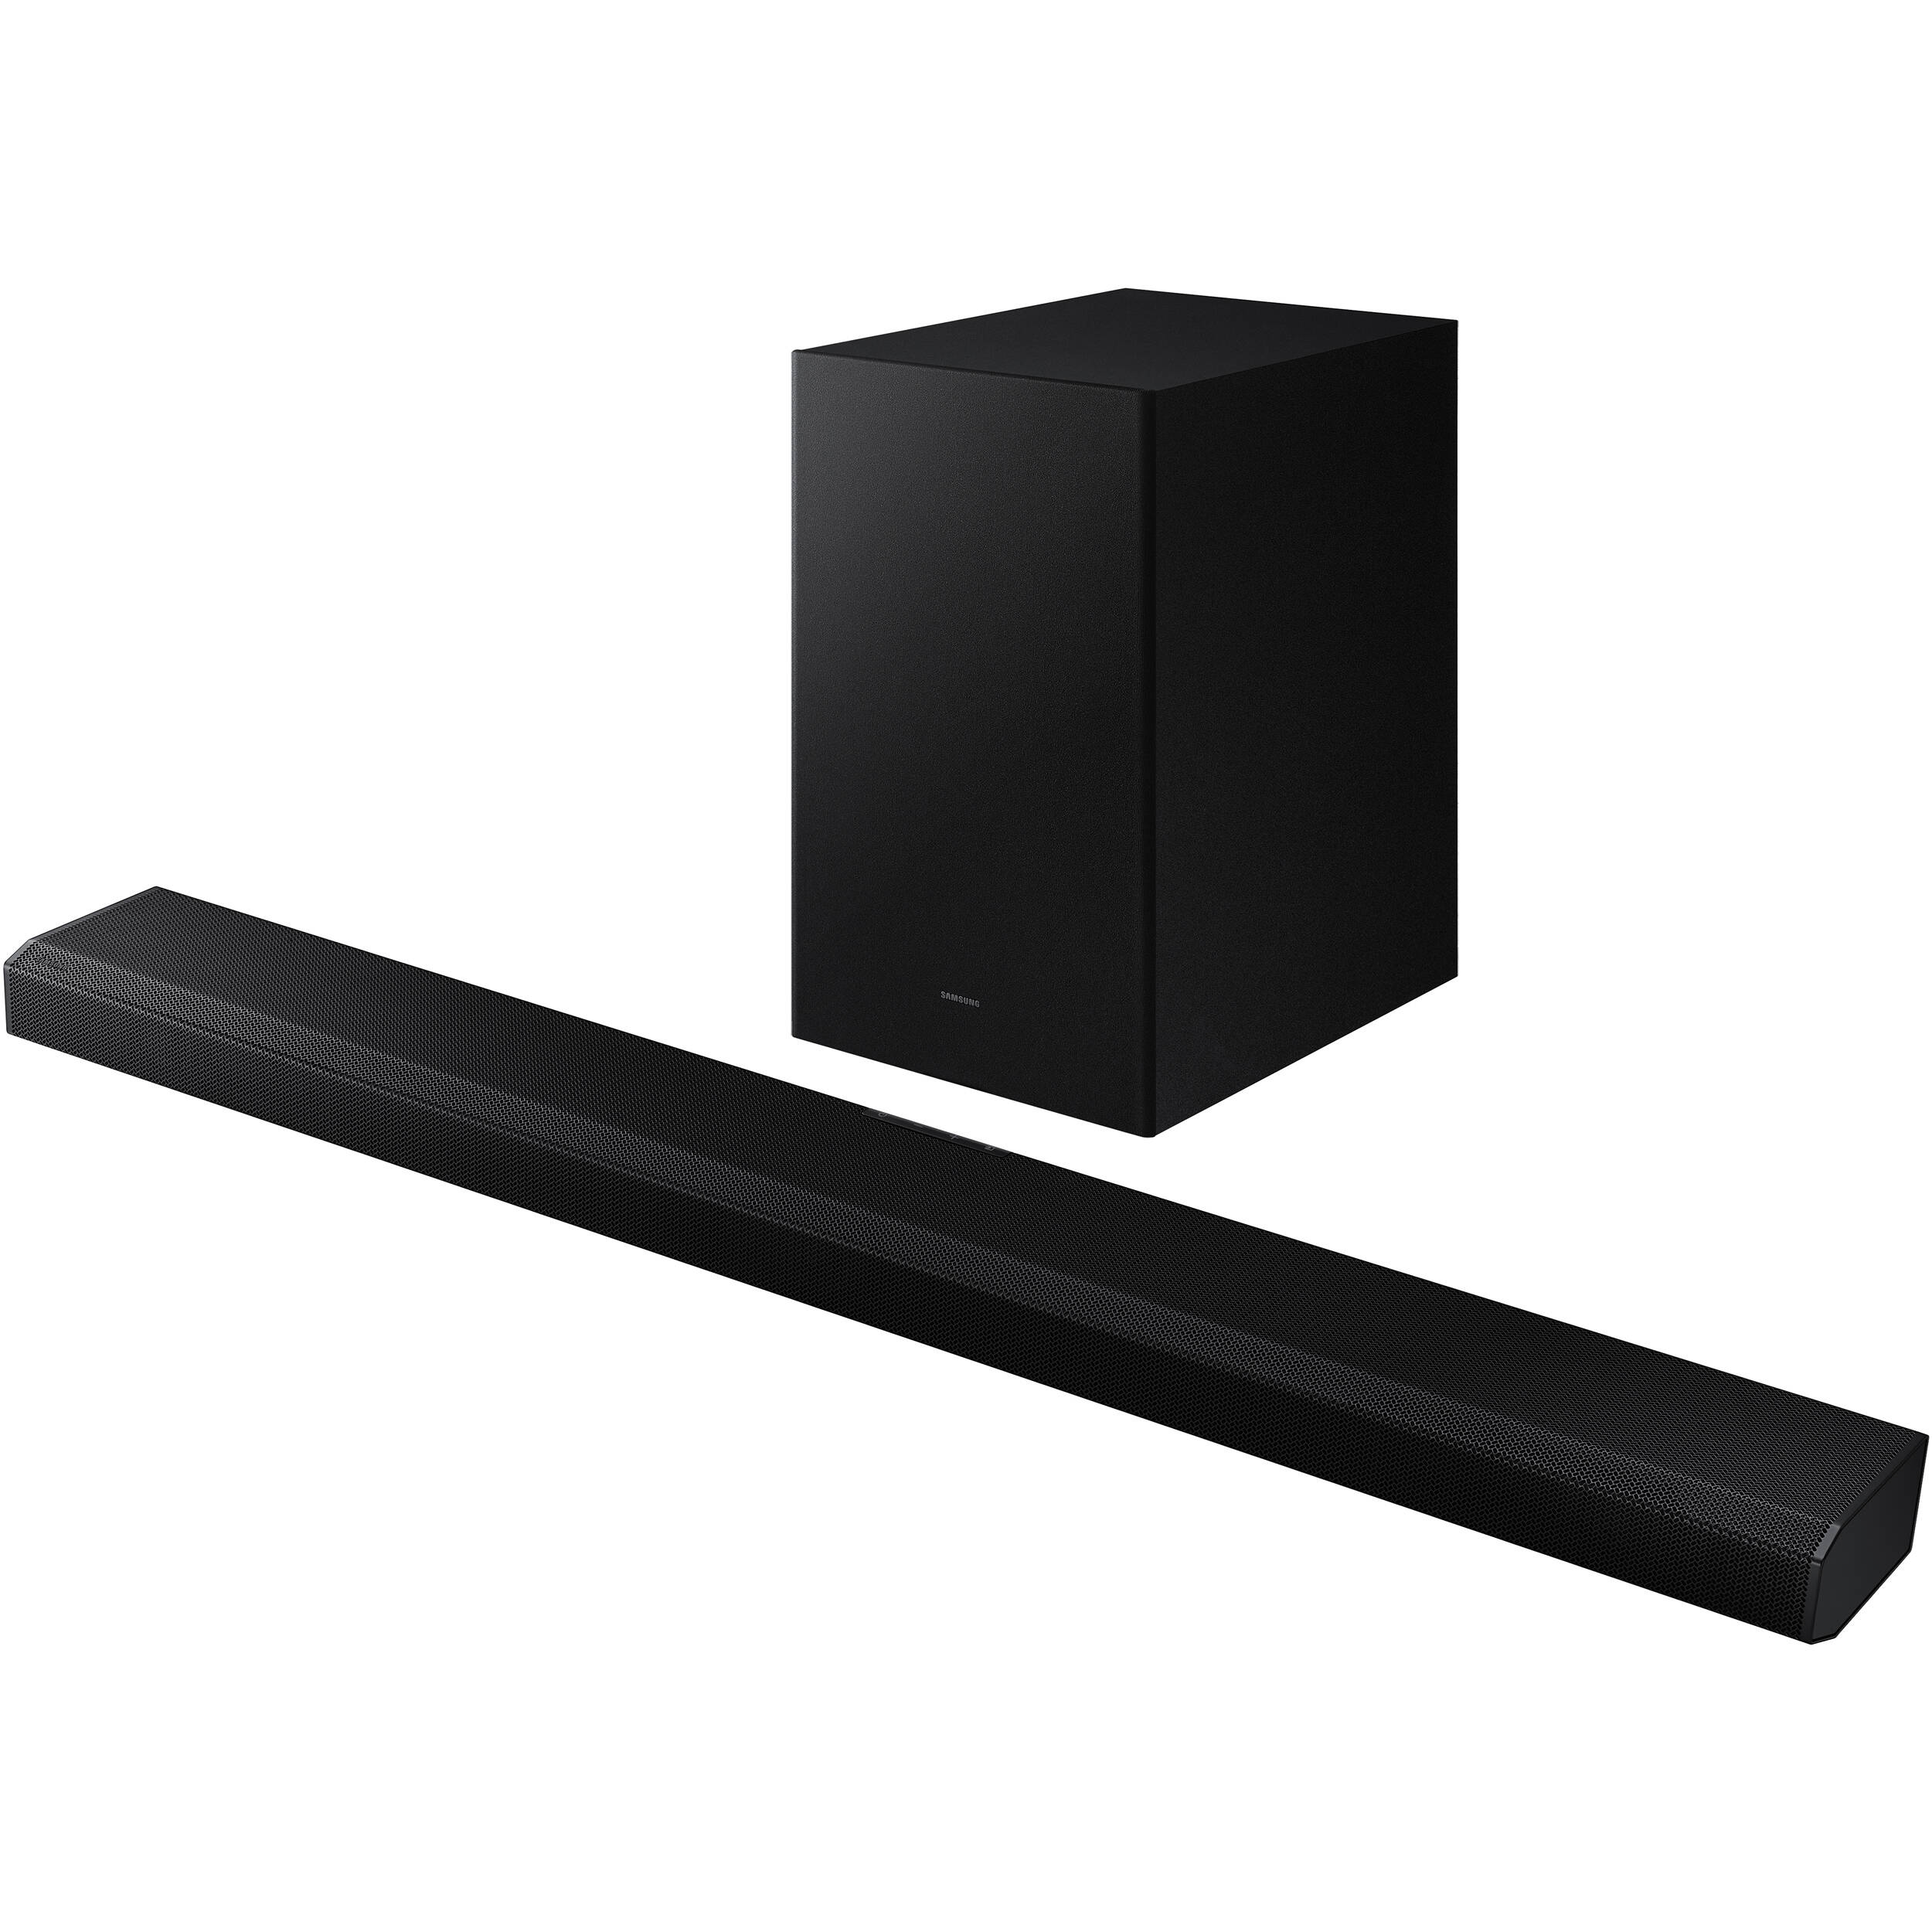 Samsung HW-Q800A soundbar review